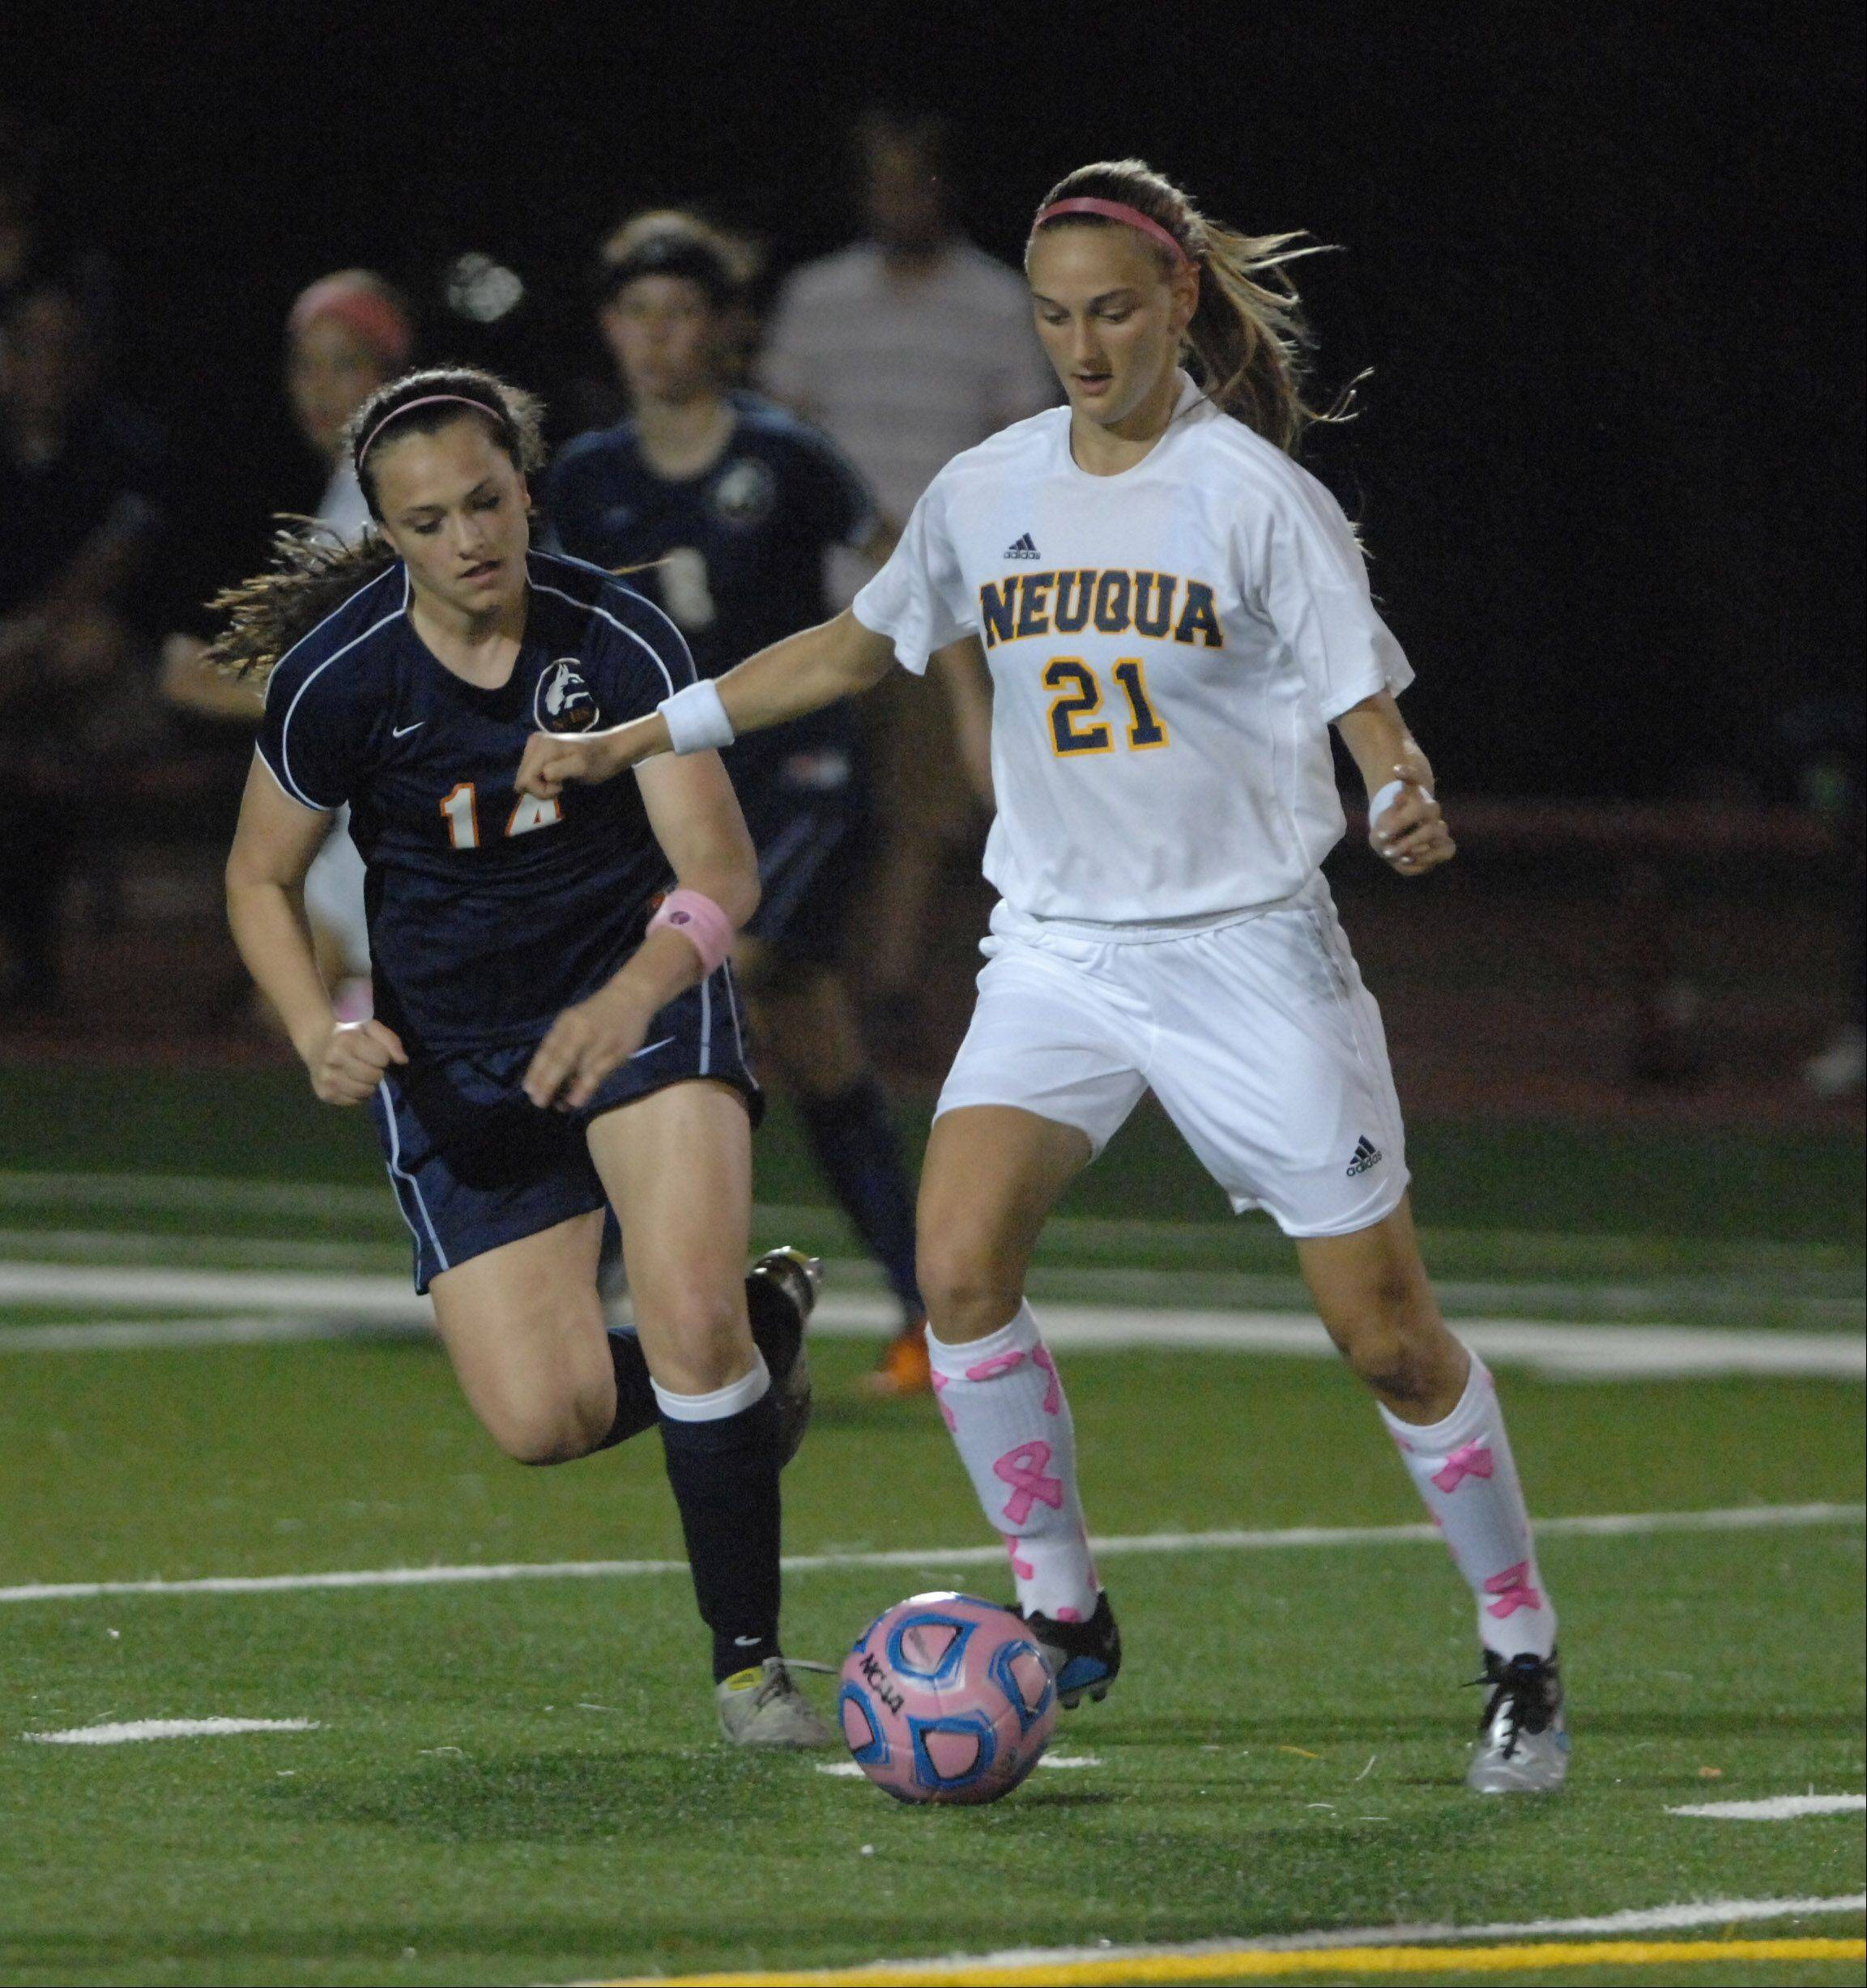 Paul Michna/pmichna@dailyherald.com ¬ Christa Szalach of Naperville North,left, and Gianna Dal Pozzo of Neuqua play in the Naperville North vs. Neuqua Valley girls soccer game at North Central College Wednesday.